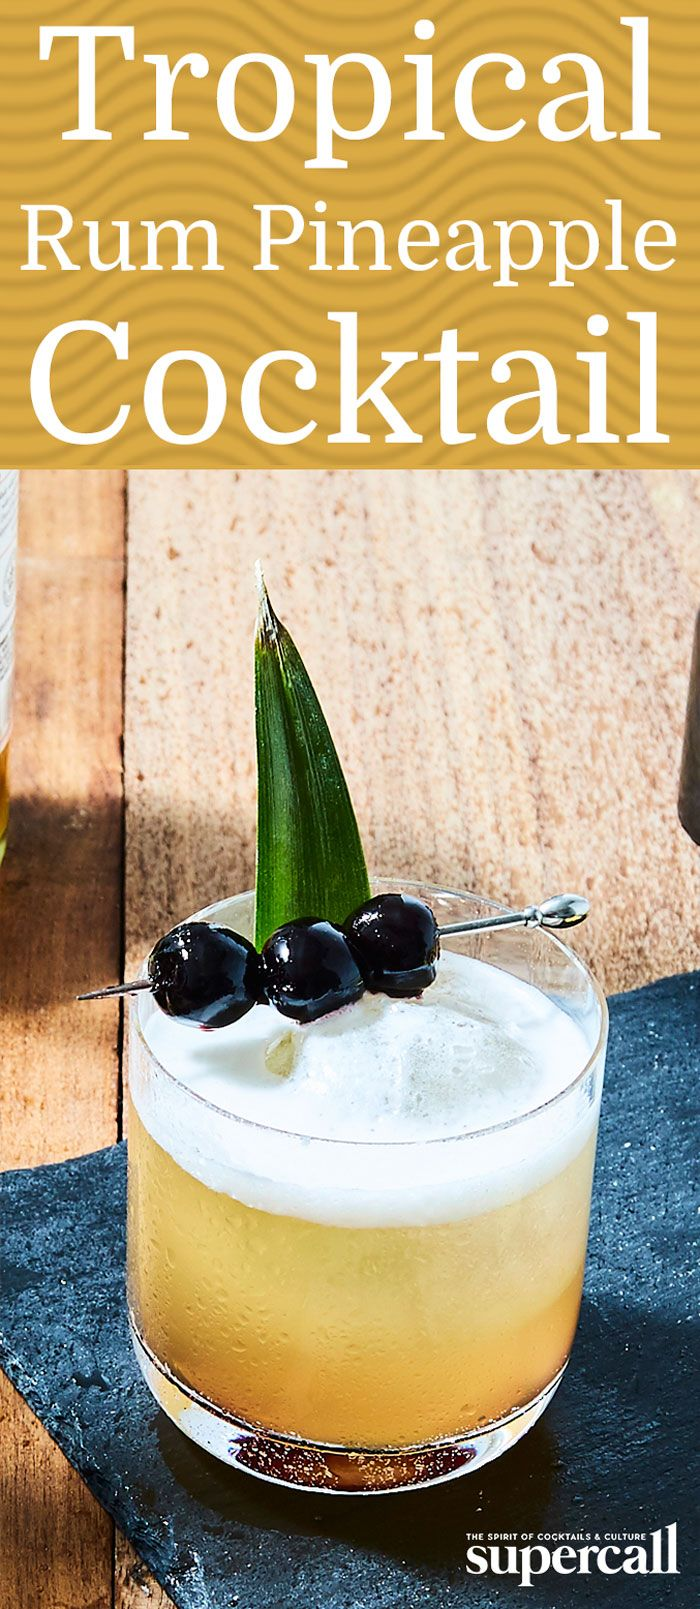 Nothing conjures thoughts of beach breezes quite like a cocktail made with rum and fresh pineapple juice. But the mix isn't just a summertime drink, especially when you add ingredients that'll spice it up. The libation is finished with bitters and a skewer of brandied cherries, and we suggest sipping it by the fire while dreaming up your next tropical getaway.